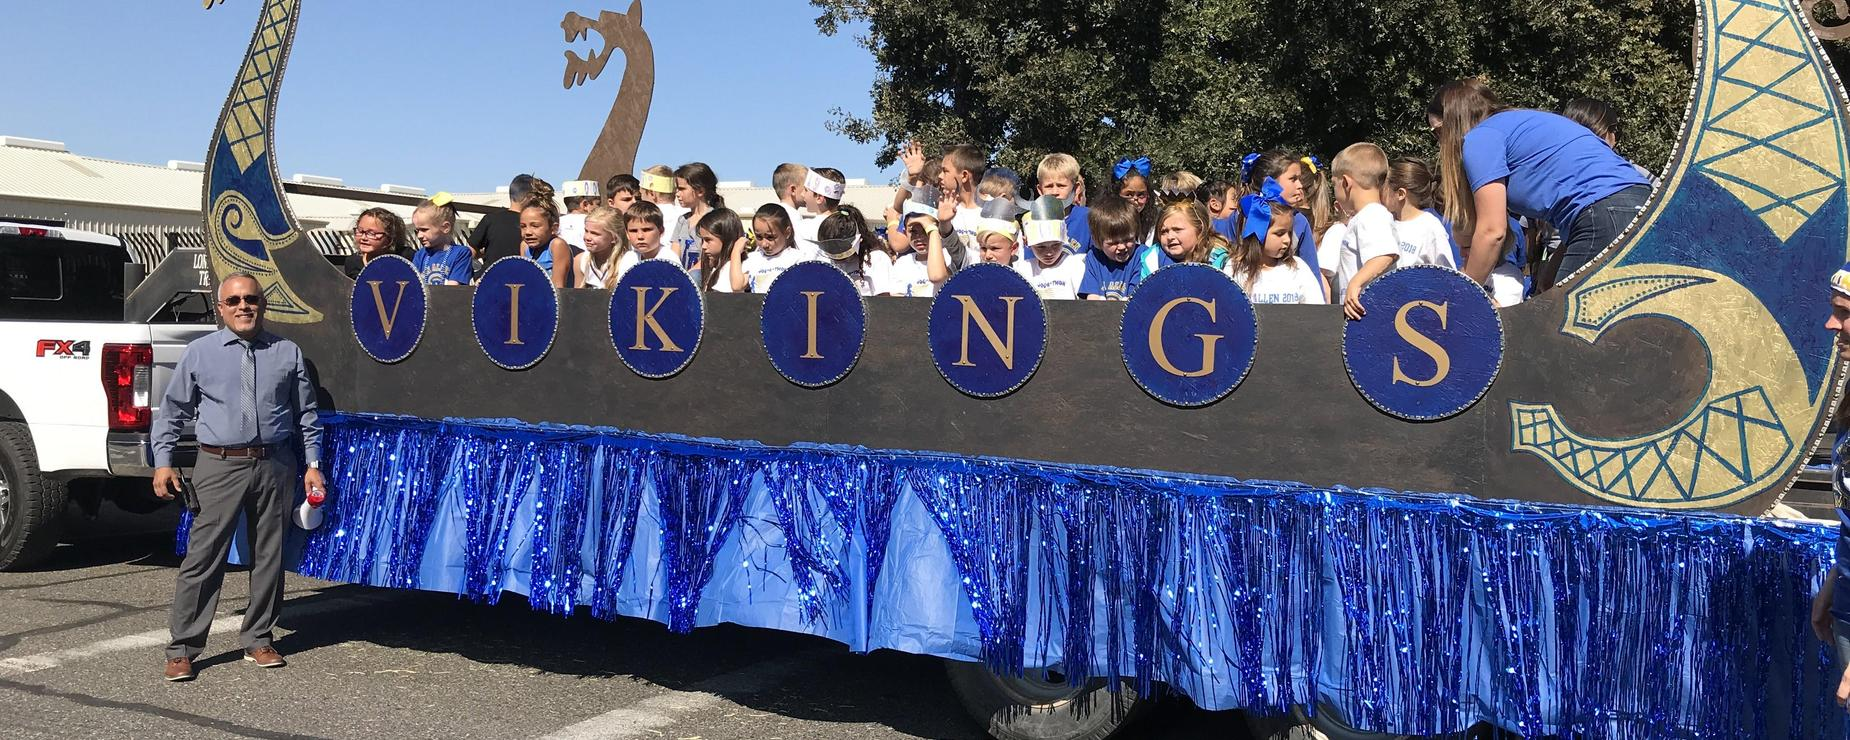 Viking homecoming float